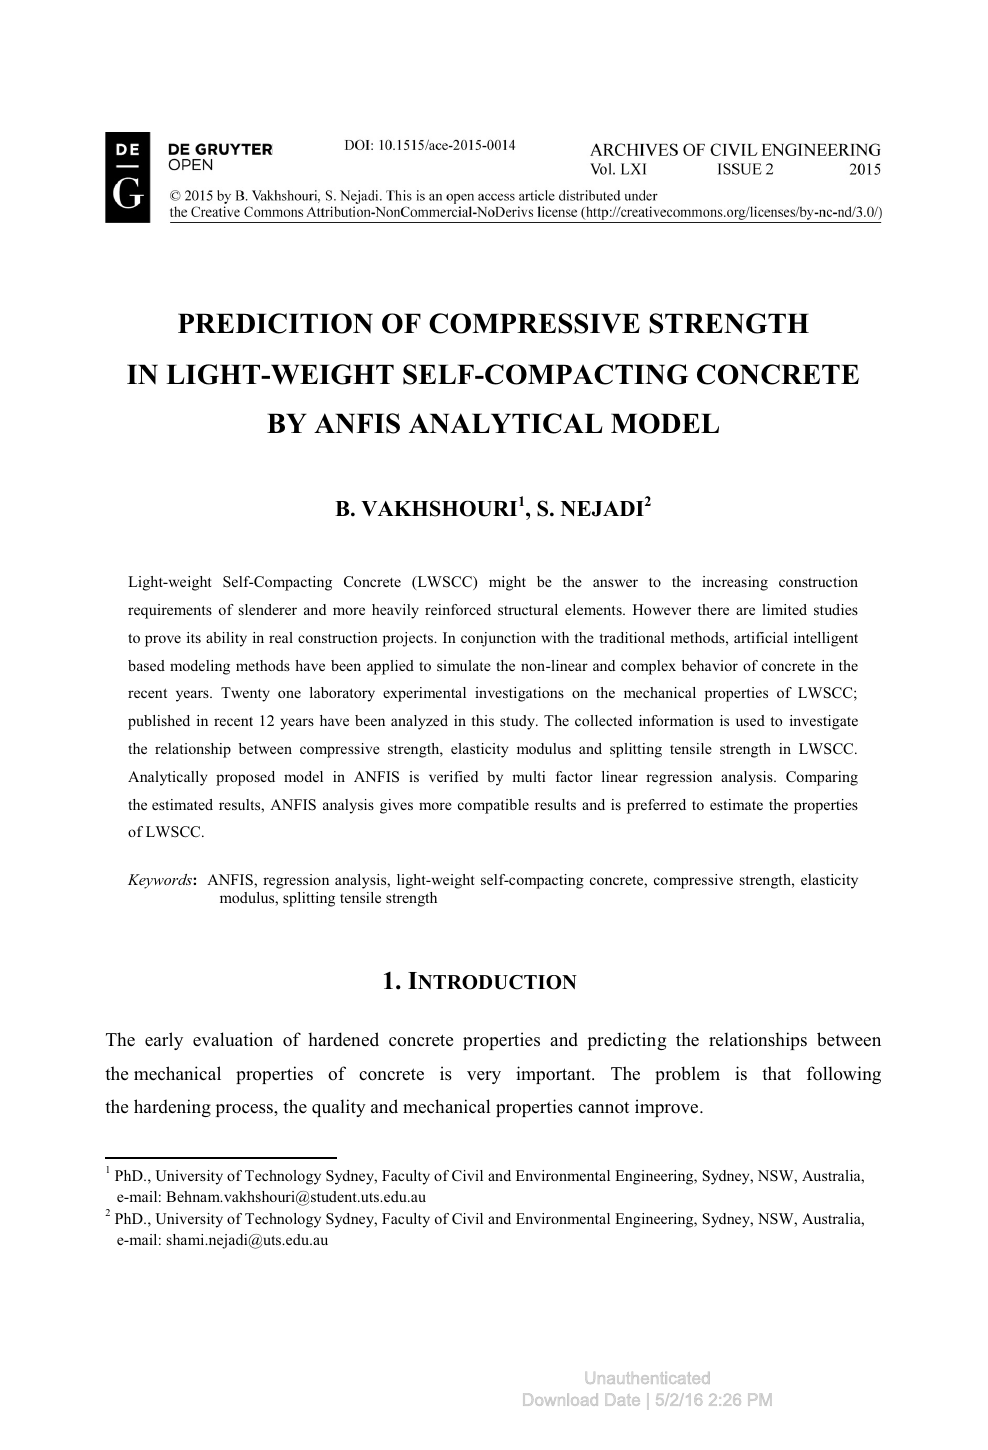 Predicition Of Compressive Strength In Light-Weight Self